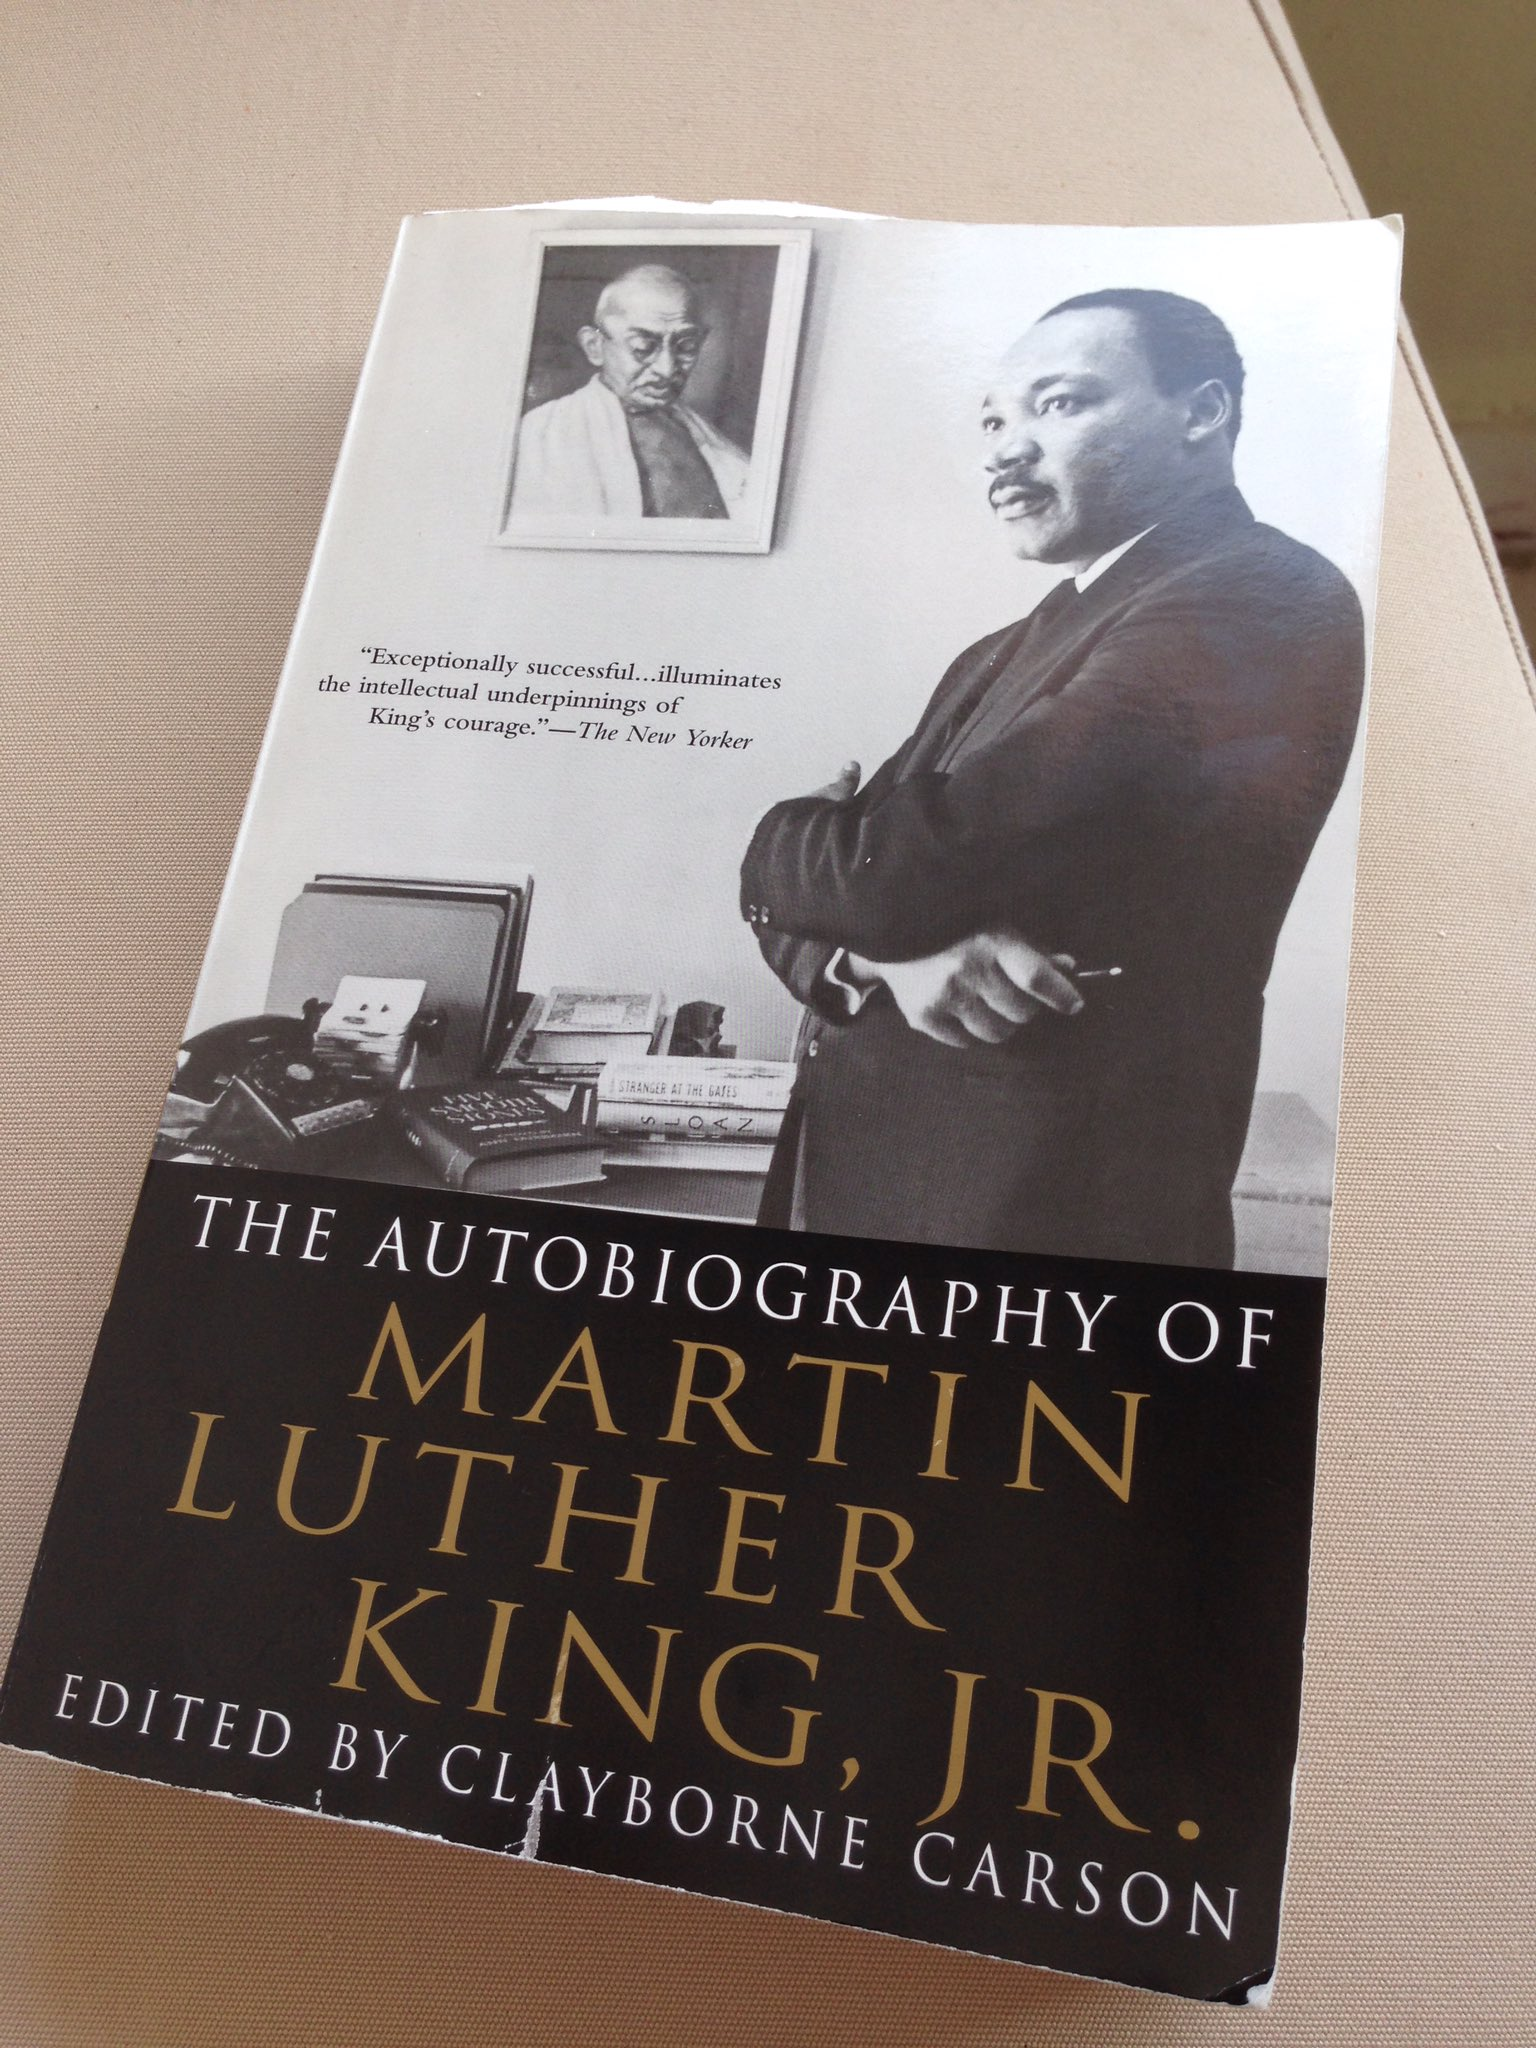 I have said this for the last 4 years now, but as a reminder, this is a #mustread!  -ISAAC #martinlutherkingday https://t.co/NTAdjeLTwq